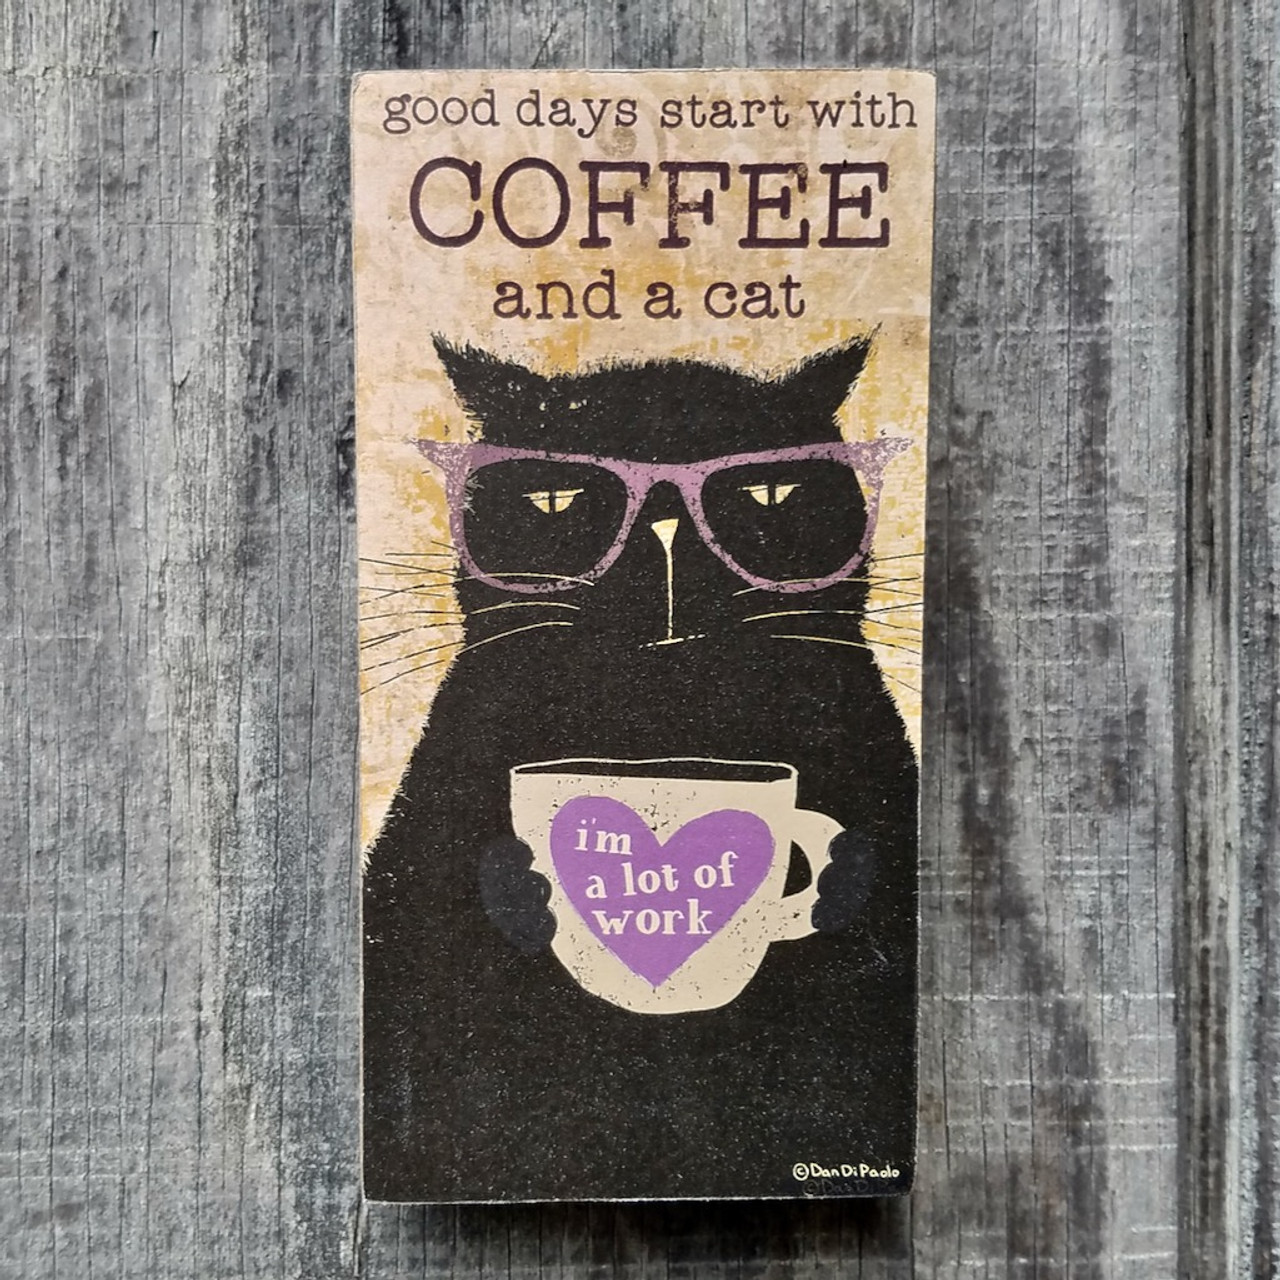 Good Days Start with Coffee and a Cat Wooden Block Sign